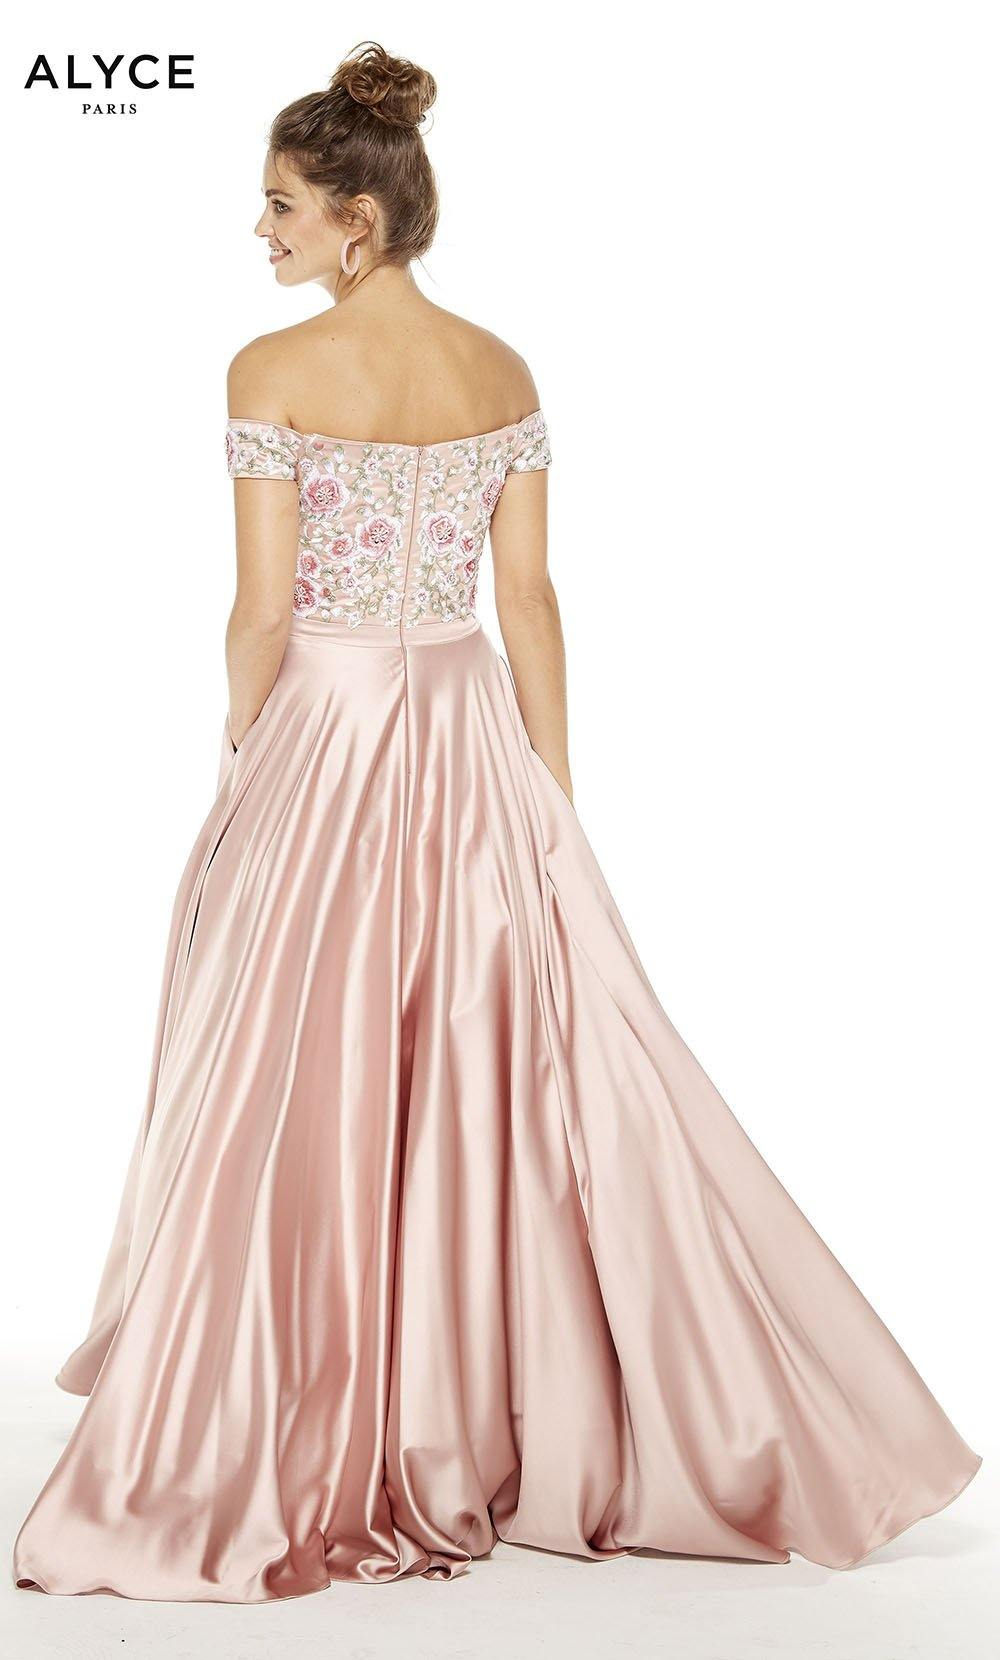 Rose Gold prom dress with floral embroidery on bodice and an off the shoulder neckline